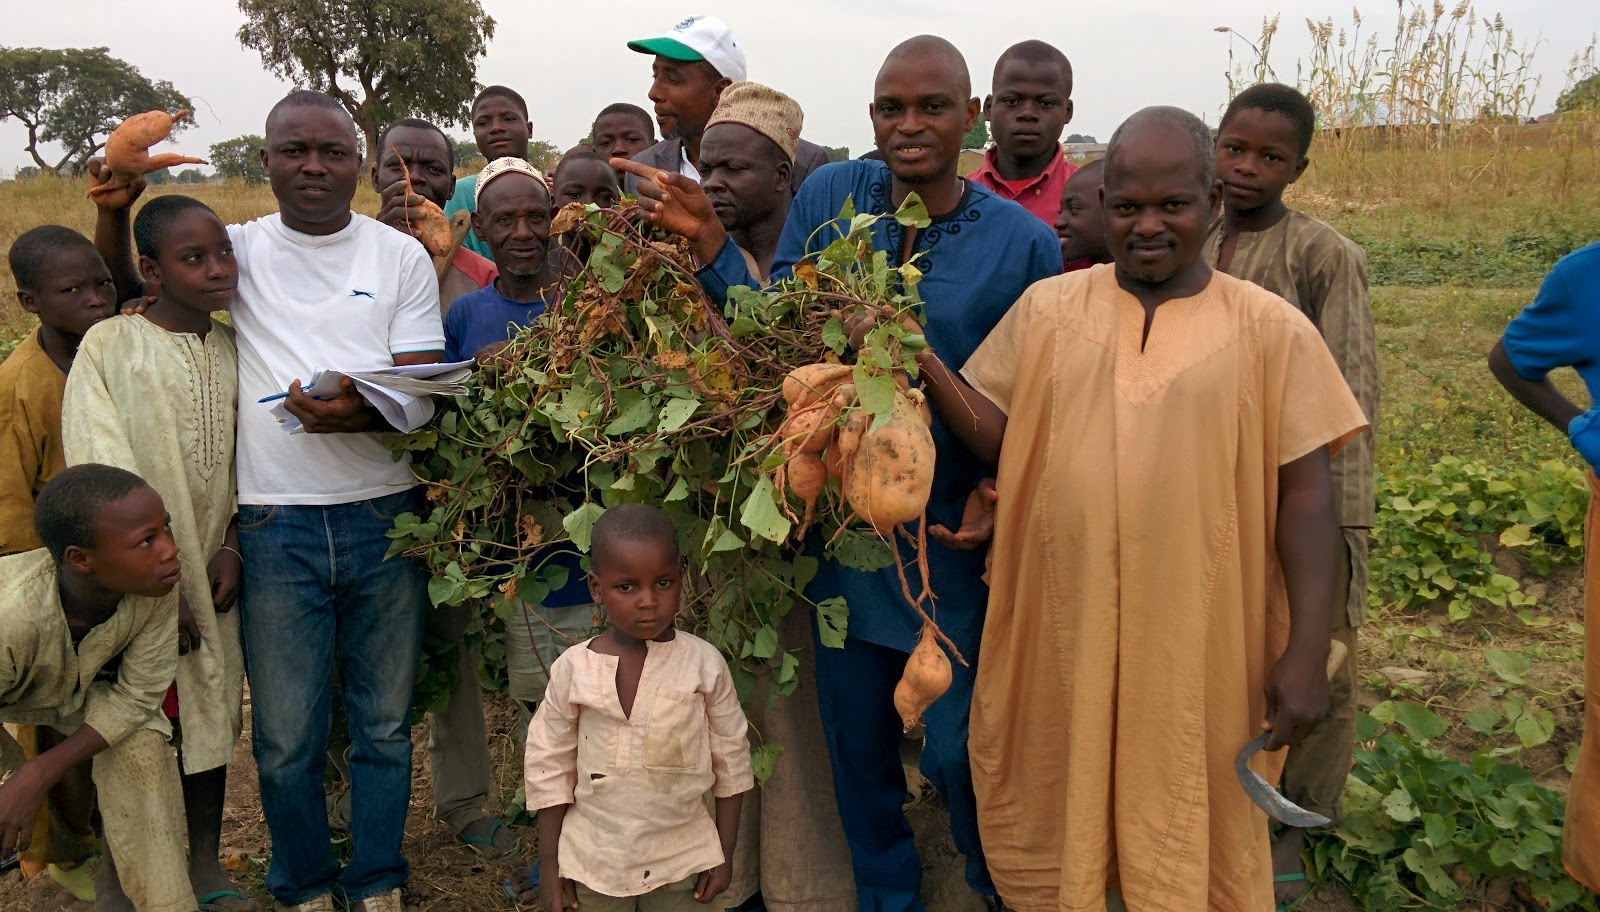 "Image result for A nutritious sweet potato variety is growing in popularity and becoming an important strategy to improve vitamin A deficiency across Uganda. Orange-fleshed sweet potato (OFSP) is rich in vitamin A and is being disseminated with support from USAID under Feed the Future, the U.S. Government's global hunger and food security initiative. OFSP has now been adopted by over 55,000 Ugandan farming households, with up to 237,000 households expected to be planting and eating it by 2018. In November 2013, the Government of Uganda released two more varieties of this potato, bringing the total number to six. The potato was Introduced in 2007 by HarvestPlus, a part of the Consultative Group on International Agricultural Research (CGIAR) Program on Agriculture for Nutrition and Health. USAID is working in Uganda to improve household nutrition and agricultural livelihoods through production and consumption of these bio-fortified sweet potatoes. Bio-fortification aims to reduce micronutrient deficiency through traditional breeding of certain crops that contain higher levels of essential micronutrients. ""Uganda was selected to pilot OFSP breeding and dissemination because sweet potato is grown by over 44 percent of Ugandan farmers and is the fourth most important staple food in the country,"" explained Anna-Marie Ball, HarvestPlus country manager for Uganda. Vitamin A deficiency is a significant health concern in the country, impacting 38 percent of children age 6 months to 59 months and 36 percent of women age 15 to 49 years, according to the 2011 Uganda Demographic and Health Survey. The deficiency is rampant in sub-Saharan Africa, affecting 43 million children under age 5, and contributing to high rates of blindness, disease and premature death in children and pregnant women. Lack of vitamin A also impedes children's growth, increases their vulnerability to disease, and contributes to poor immune function and maternal mortality. Recent figures released by the International Potato Center(link is external) indicate that OFSP is an important source of beta-carotene, the pre-cursor to vitamin A. Just 125 grams of a fresh sweet potato root from most orange-fleshed varieties contains enough beta-carotene to provide the daily provitamin A needs of a preschooler. Charles Musoke, a Seed Systems specialist working with HarvestPlus Uganda, explained that the orange-fleshed sweet potato is cross-bred with local potato varieties. In addition to addressing vitamin A deficiencies, it is as sweet as the indigenous white sweet potato, and has high and fast-maturing yields. Agricultural extension staff work closely with farmers' groups and other parties to ensure widespread OFSP availability and sustainability. Ball believes that if enough people receive the vines, plant them, and take good care of them, the bio-fortified OFSP variety can become well-established across Uganda. Schools around Uganda that grow potatoes in their gardens as a main crop have shown interest in OFSP. ""In Kole district, students of Aboke Girls' Primary School are focusing on orange-fleshed sweet potatoes with the aim of multiplying the vines. The aim is to multiply them so that each student can have sufficient quantities to take home for their parents to plant extensively,"" said Odong Stephen, a field extension worker with World Vision Uganda. Kyalisiima Kate, a project coordinator with Caritas Development Organization, explains that people are interested in growing OFSP mainly for home consumption. ""In Kibaale district, 53 pupils of Buruku Primary School and 18 from Rwentale Primary School actively took part in the planting of OFSP in their respective gardens. While the teachers ate the roots, the pupils carried the vines for their parents to plant at home,"" she said. HarvestPlus provides information and training to farmers on how to conserve the potato vines from season to season. Nutrition training is also offered to the farmers. Families learn how to prepare the potatoes, which contribute to the nutritional needs of young children and pregnant and breastfeeding women, as a component of a balanced diet. ""Our beneficiaries are sensitized about the range of food preparation approaches. Besides steaming and boiling, families make flour from the orange potatoes, which, in combination with wheat flour and other ingredients, can be used to make chapatti, donuts and porridge."" said Ball. With support from USAID, HarvestPlus is proactively working to link OFSP farmers to markets. Through personal connections, traders are educated about the nutritional benefits of OFSP and rapport is being built between the OFSP farmers and traders. HarvestPlus is also working with larger, commercial farmer groups (those who plant the OFSP on more than 1 acre of land) around Kampala, Mbarara, Mbale and Gulu districts and relies on their existing hubs for marketing. This ensures that OFSP gets to the market so everyone can access them, holding much promise for both farmers and families as the crop's popularity grows in Uganda. File Attachment Approved (BFS, AFR) Orange-fleshed Sweet Potatoes in Uganda_Final.docx RELATED STORIES Ensuring Equal Rights to Land in Northern Uganda Last updated: February 12, 2016 SHARE THIS PAGE"